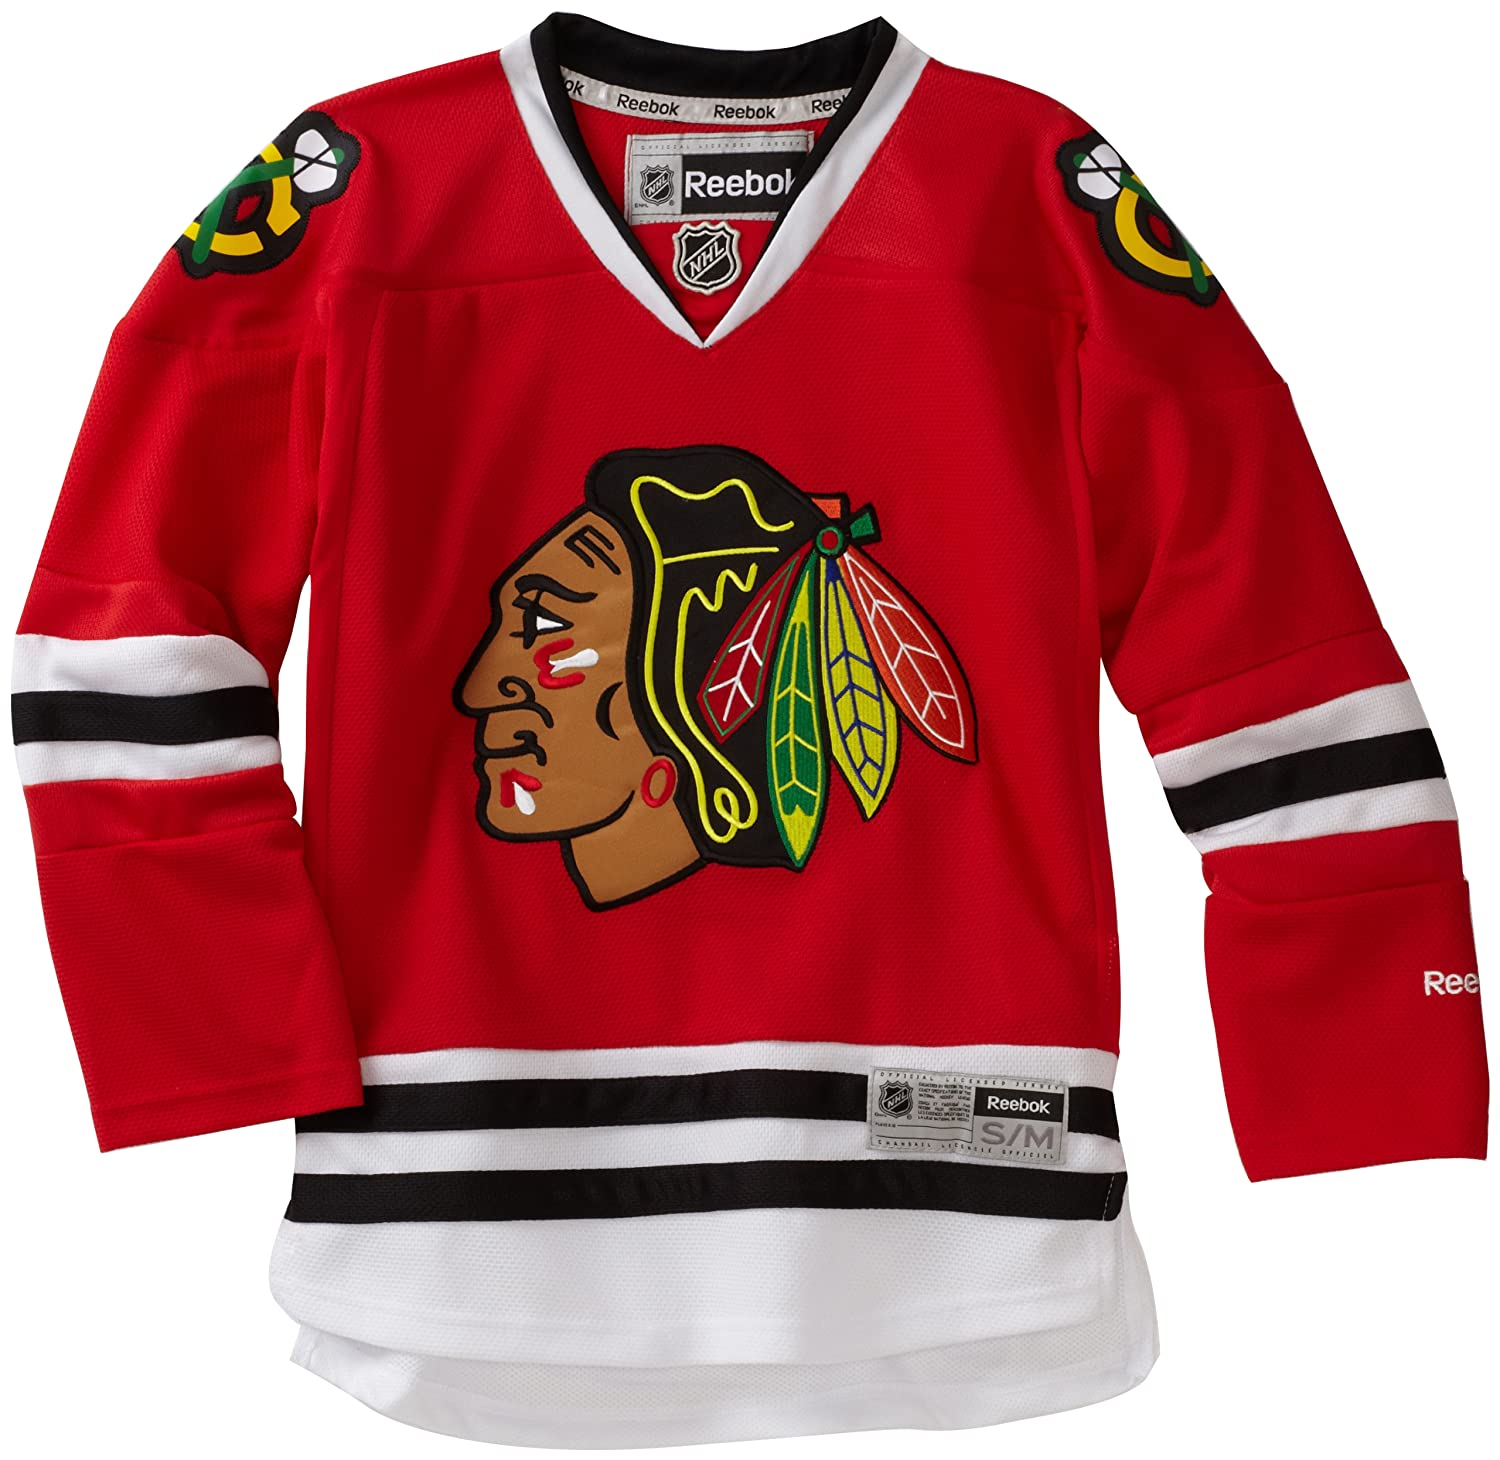 NHL Chicago Blackhawks Youth Boys 8-20 Team Premier Jersey, Red,Small/Medium NHL by Outerstuff R-58HXB-DD 58HXB-CHI-TC-S/M